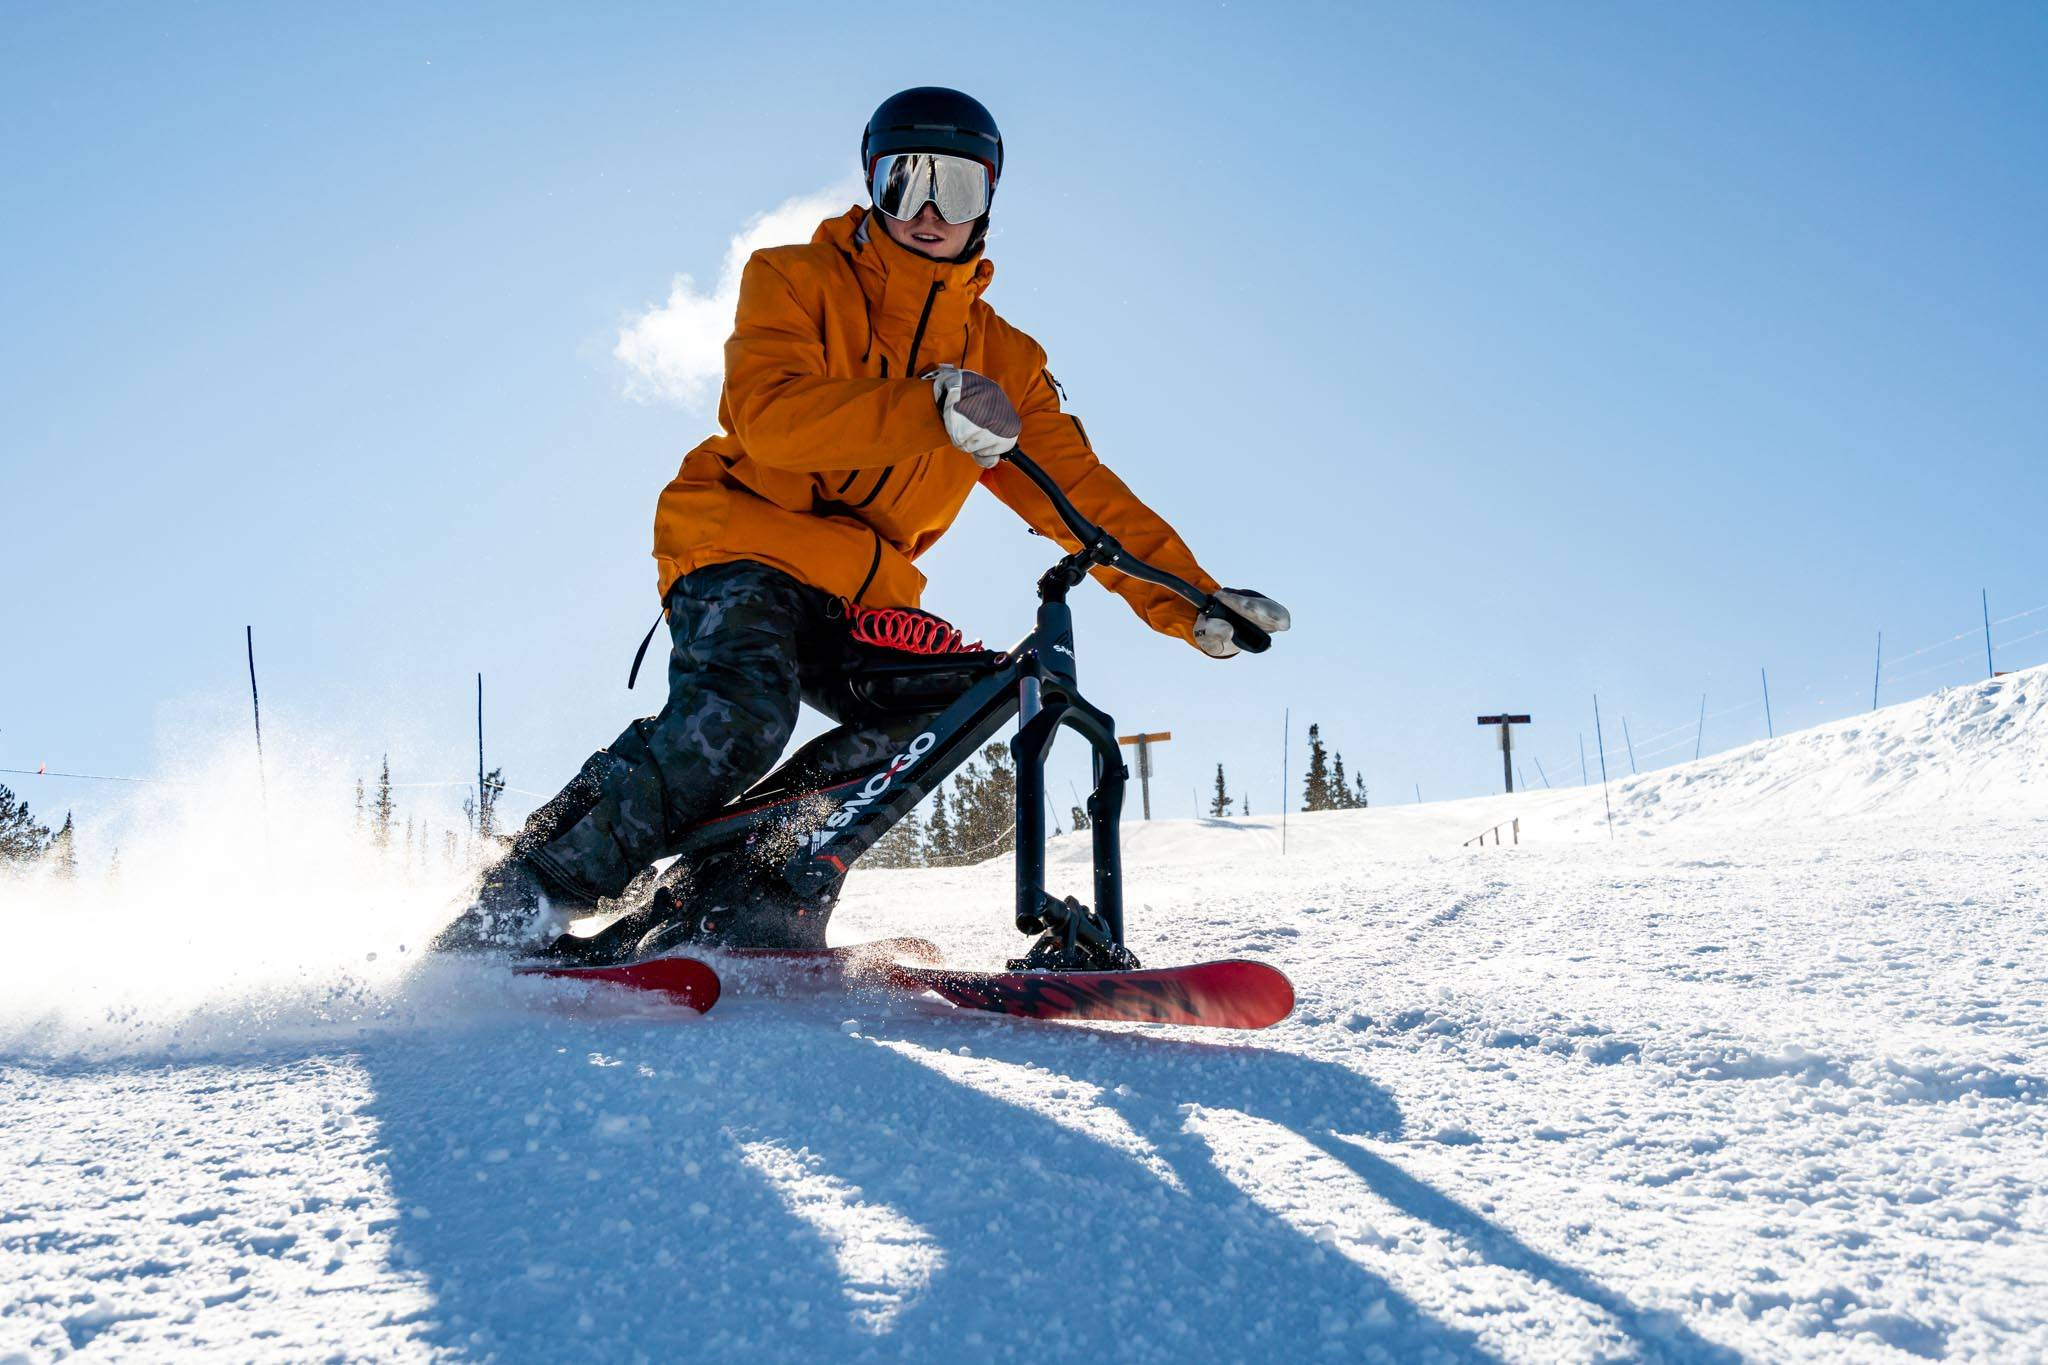 Together, SNO-GO and SNOW Operating are poised to open and expand new markets of interested snow-goers through SNO-GO's Premier Partnerships offering rentals, lessons, and retail sales